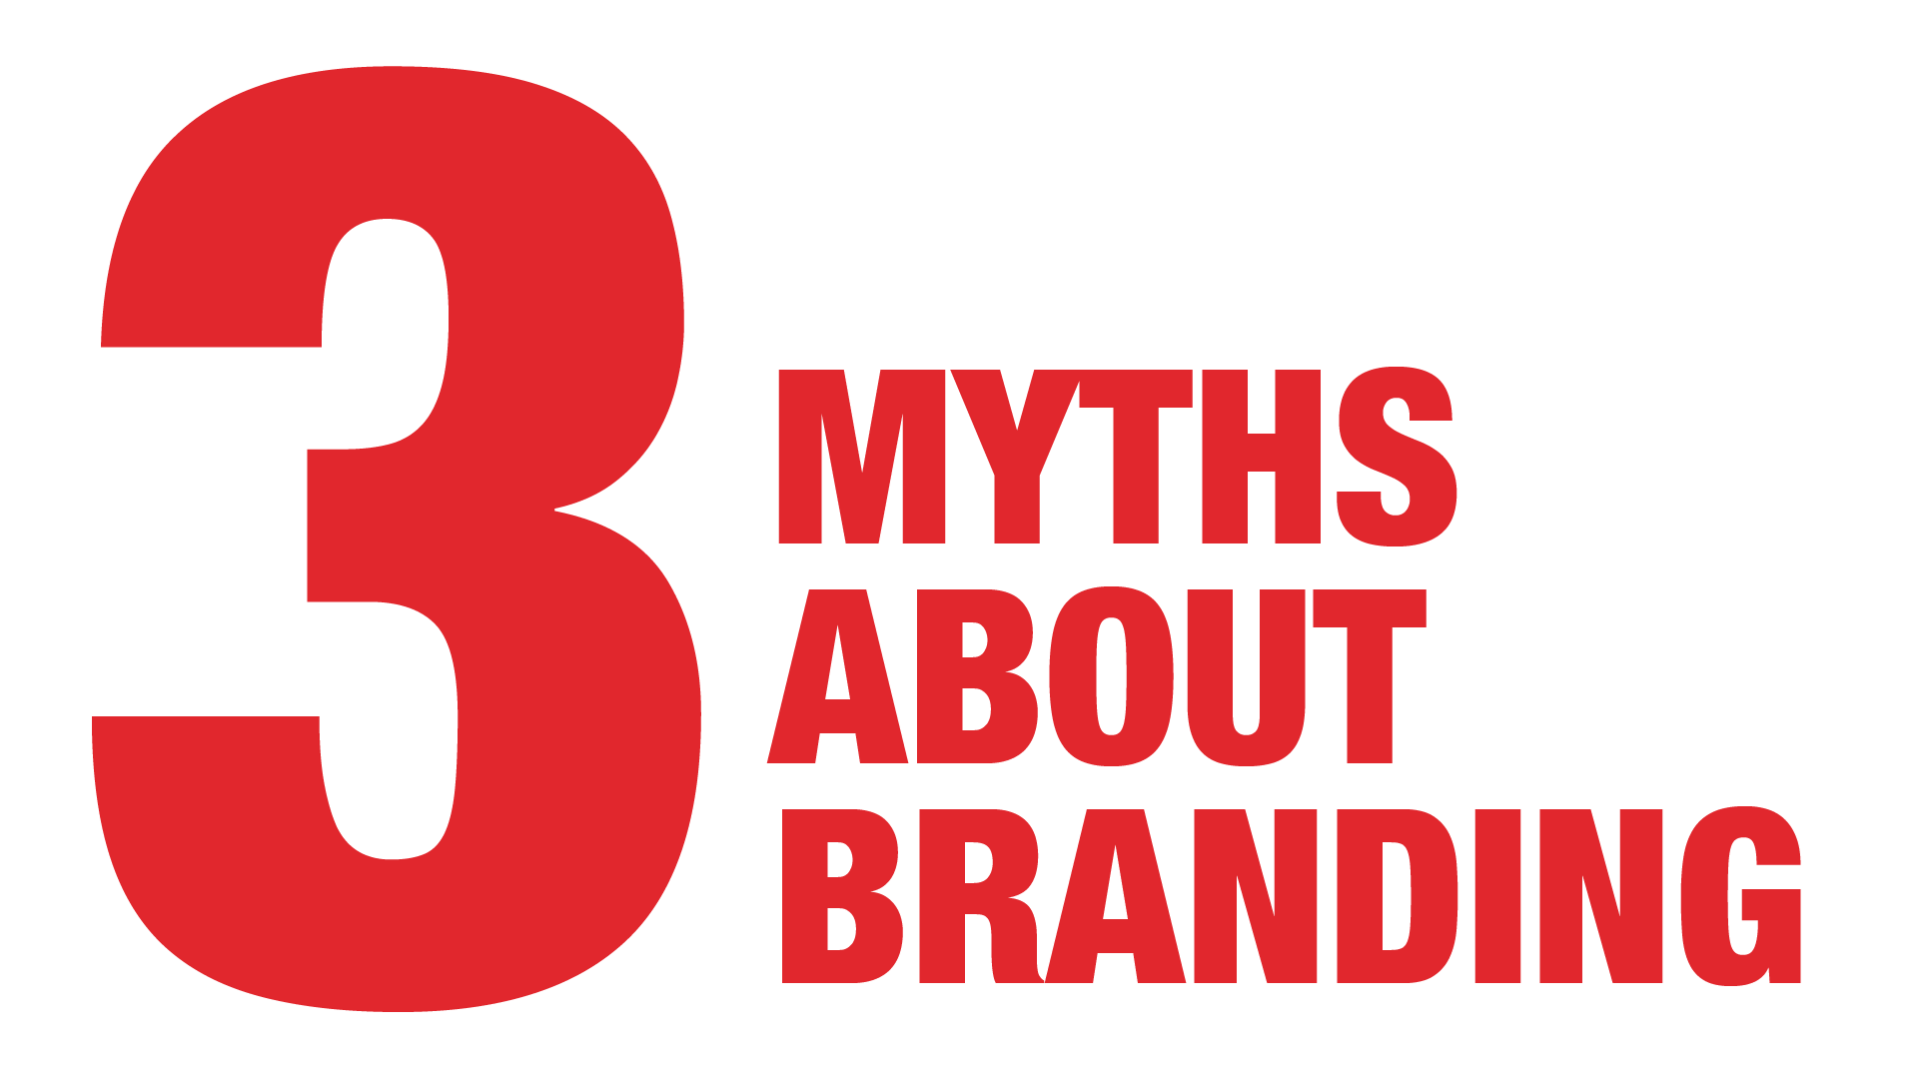 3 Myths about branding - Manraj Ubhi